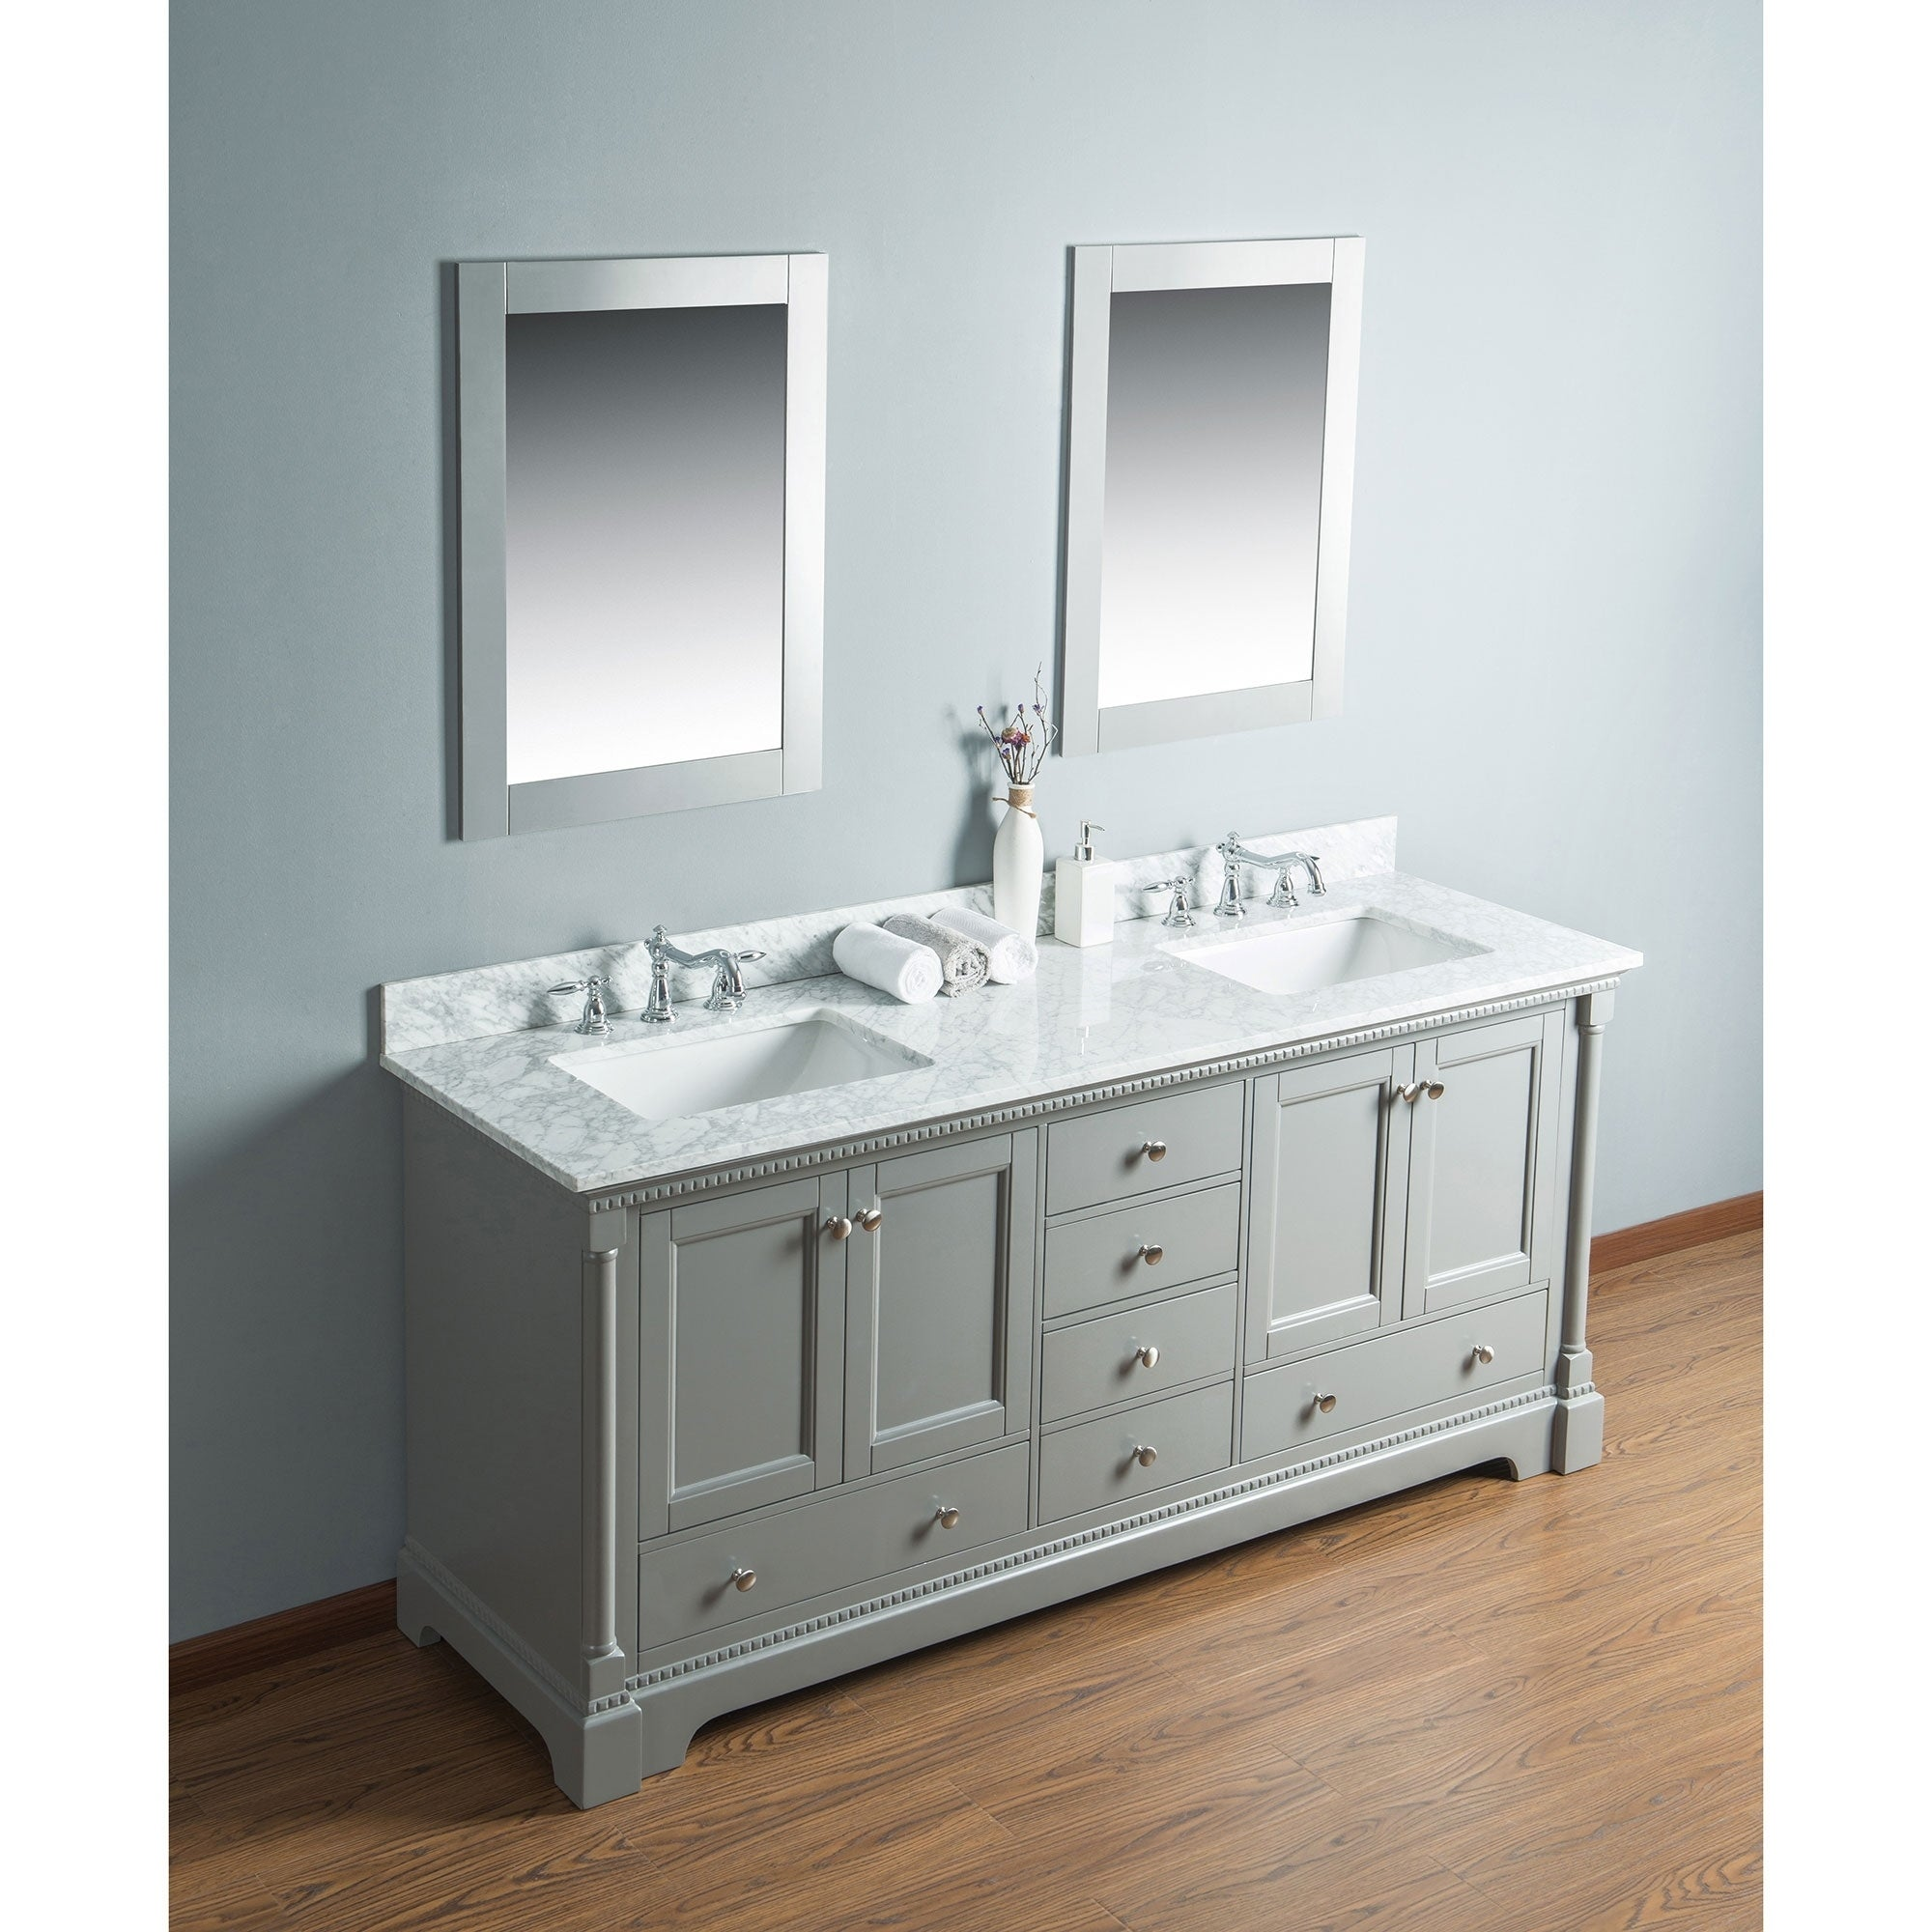 Fantastic Olivia 72 In Double Bathroom Vanity In Gray With Carrera Marble Top And No Mirror Interior Design Ideas Inesswwsoteloinfo